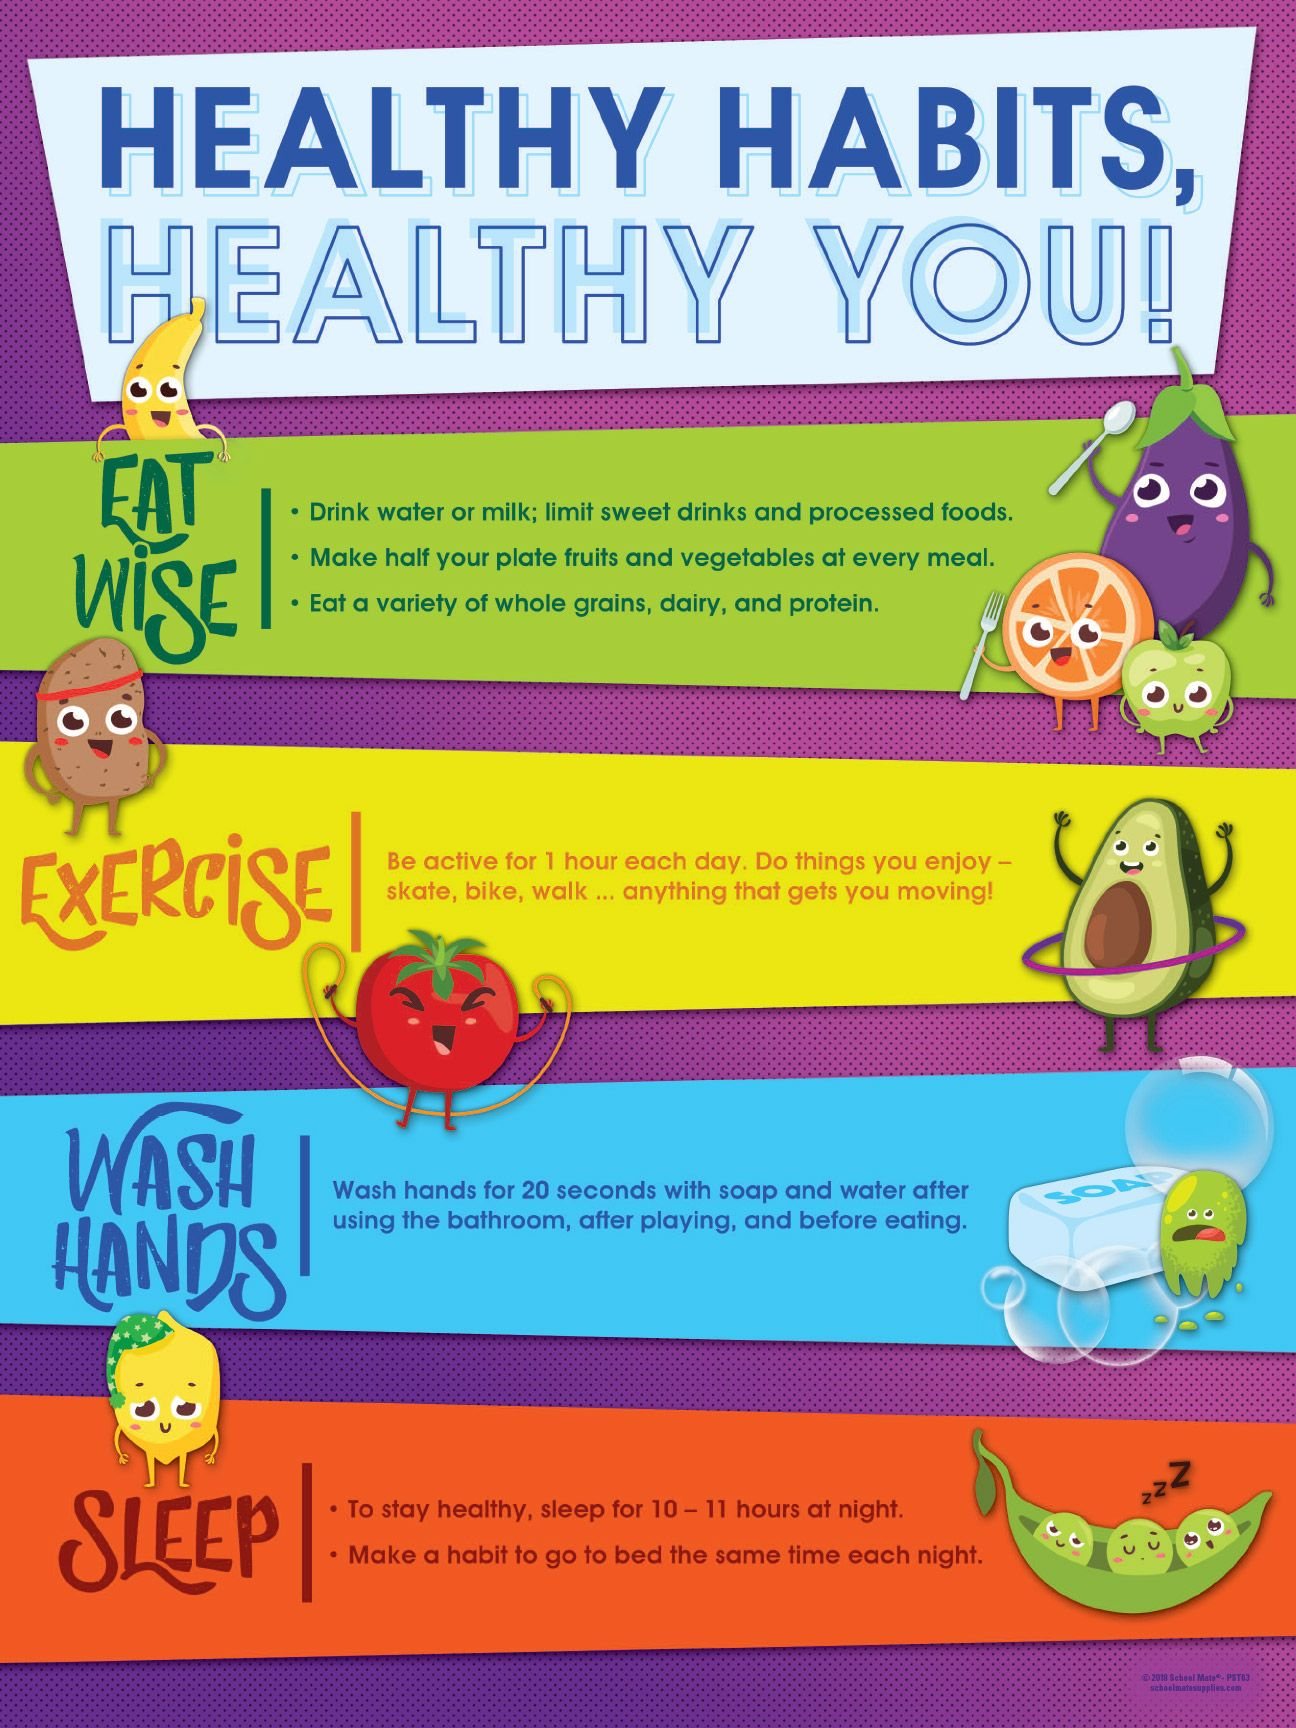 Foster Healthy Habits For Your Students With Eating Exercising Hand Washing And Sleeping Tips With This Color Healthy Habits For Kids Healthy Habits Healthy